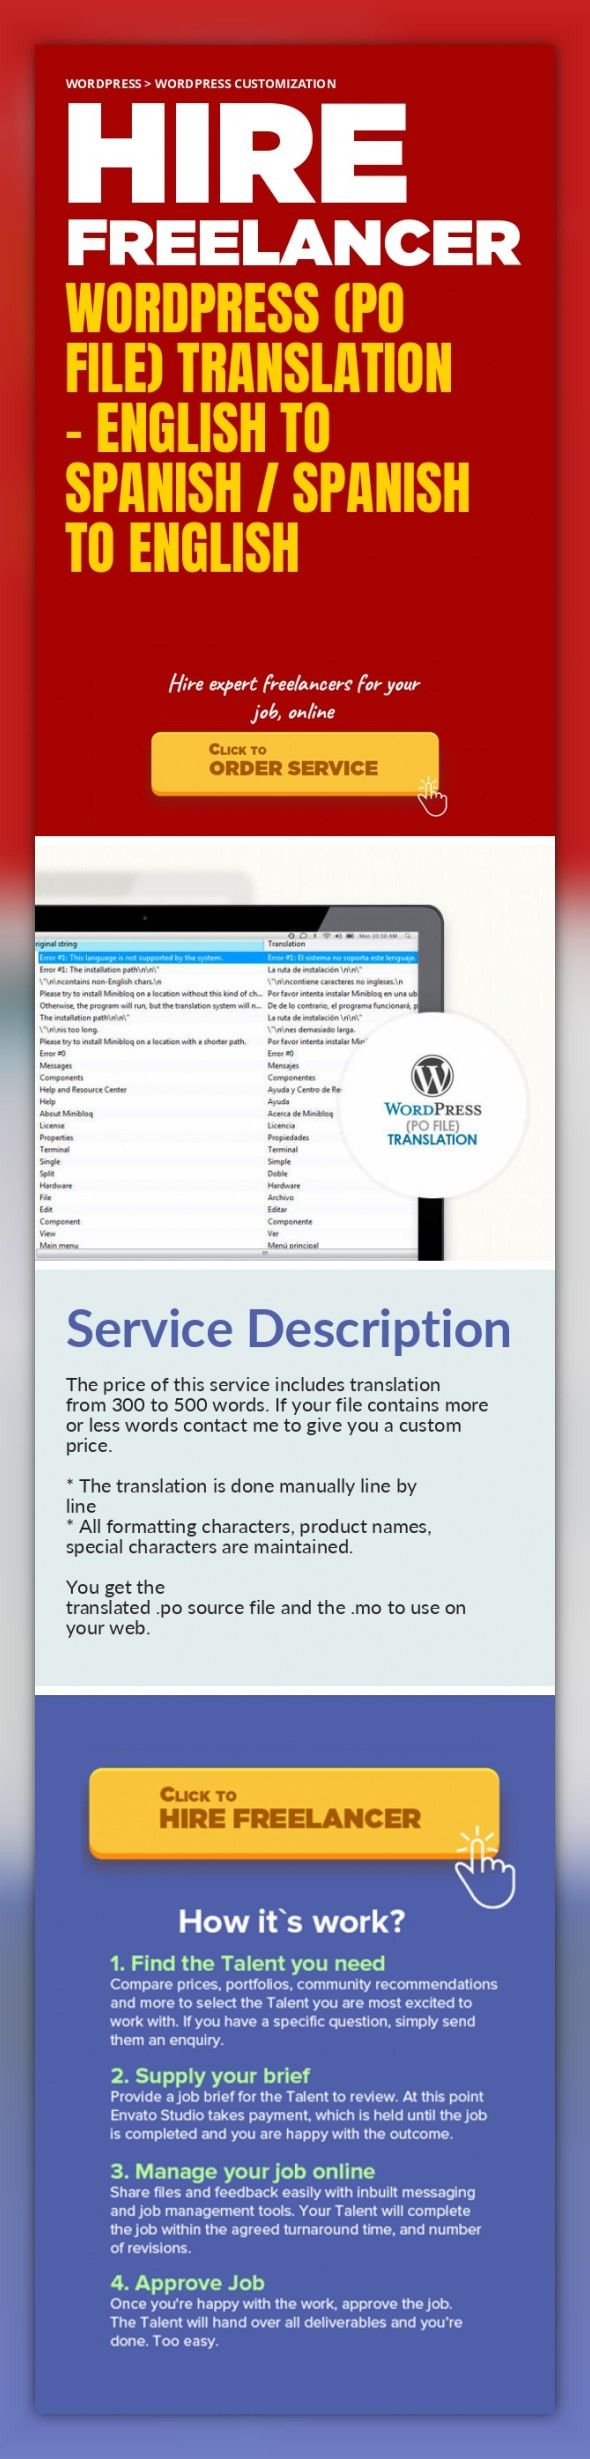 WordPress (PO File) Translation - English To Spanish / Spanish To English WordPress, WordPress Customization   The price of this service includes translation from 300 to 500 words. If your file contains more or less words contact me to give you a custom price.    * The translation is done manually line by line  * All formatting characters, product names, special characters are maintained.    You g...